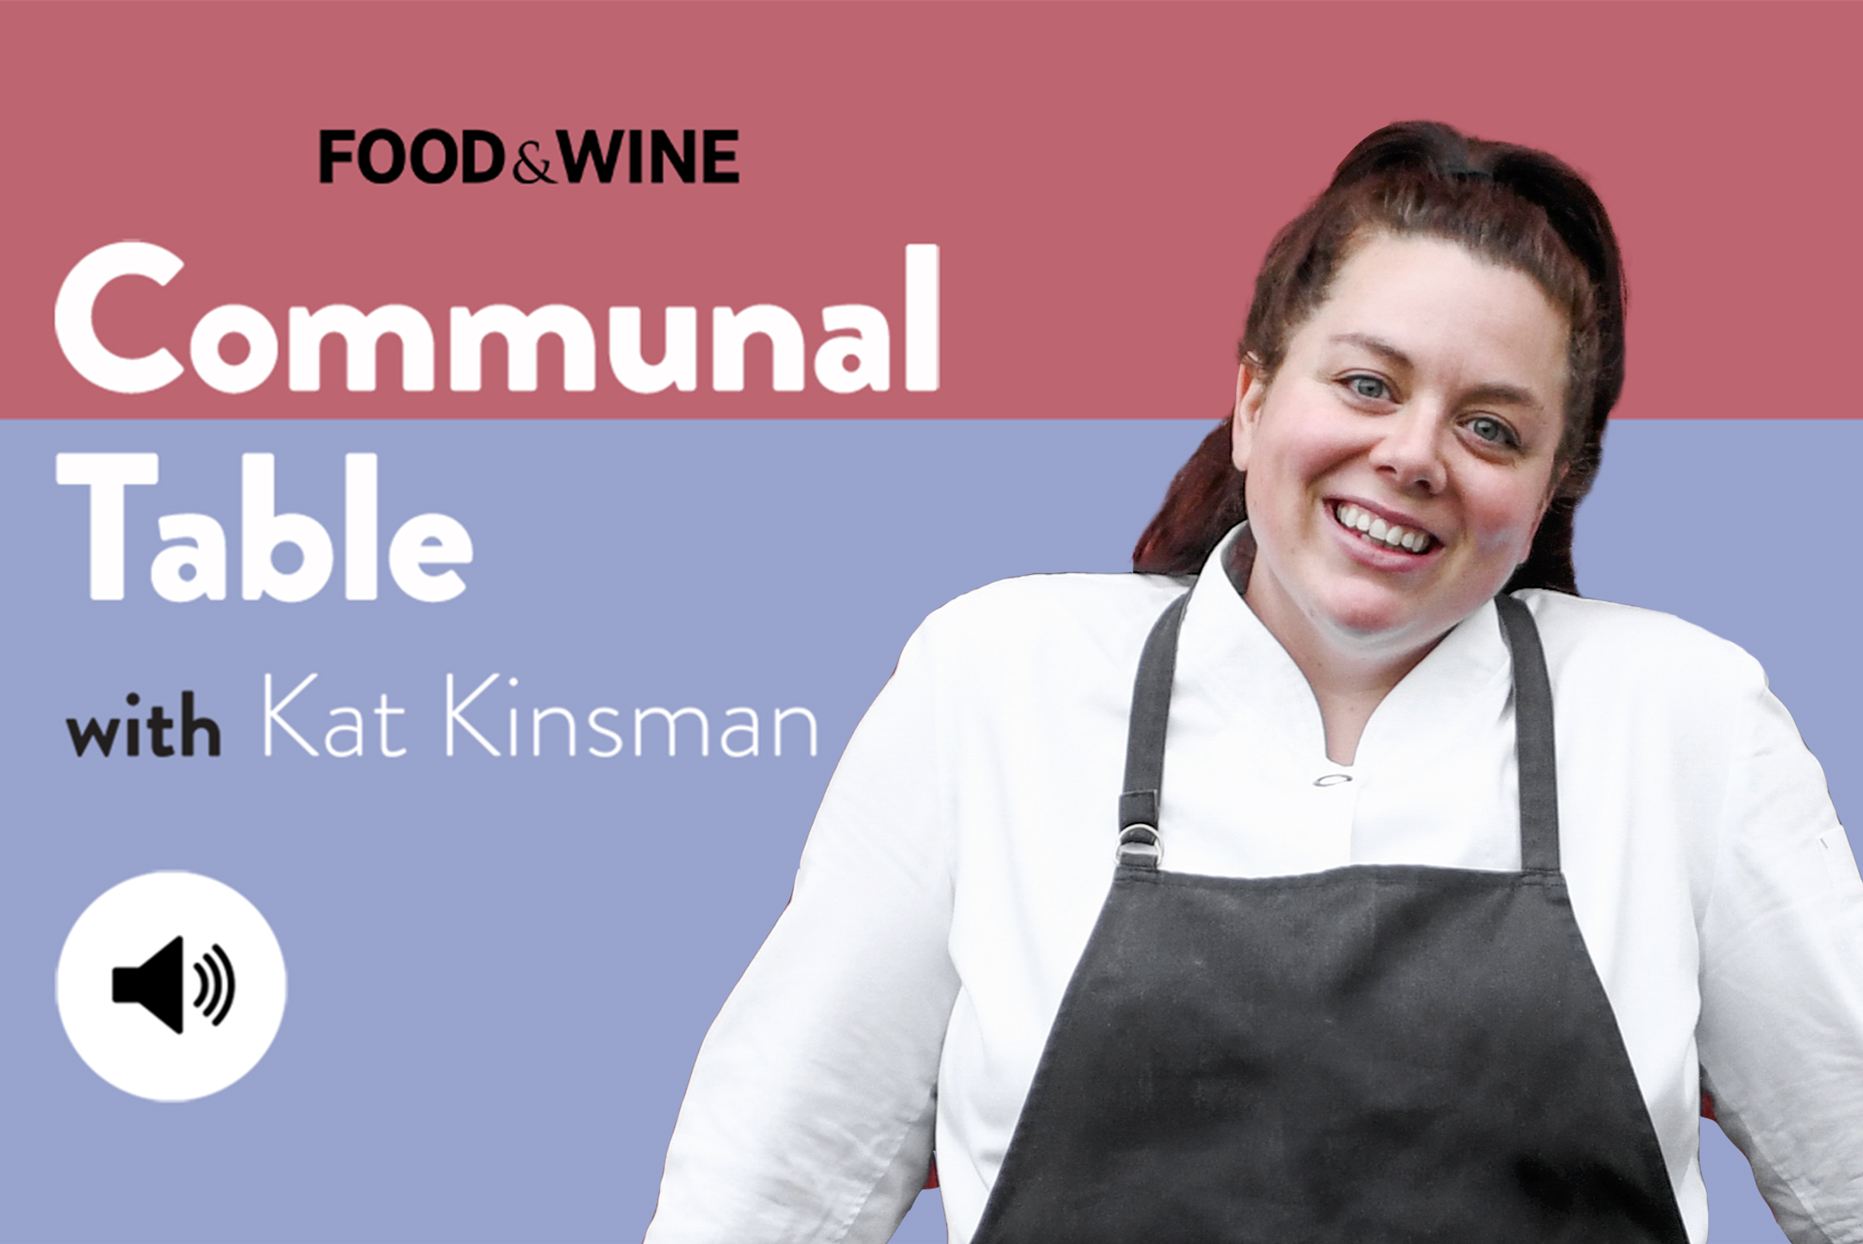 Communal Table with Kat Kinsman featuring Cassidee Danny